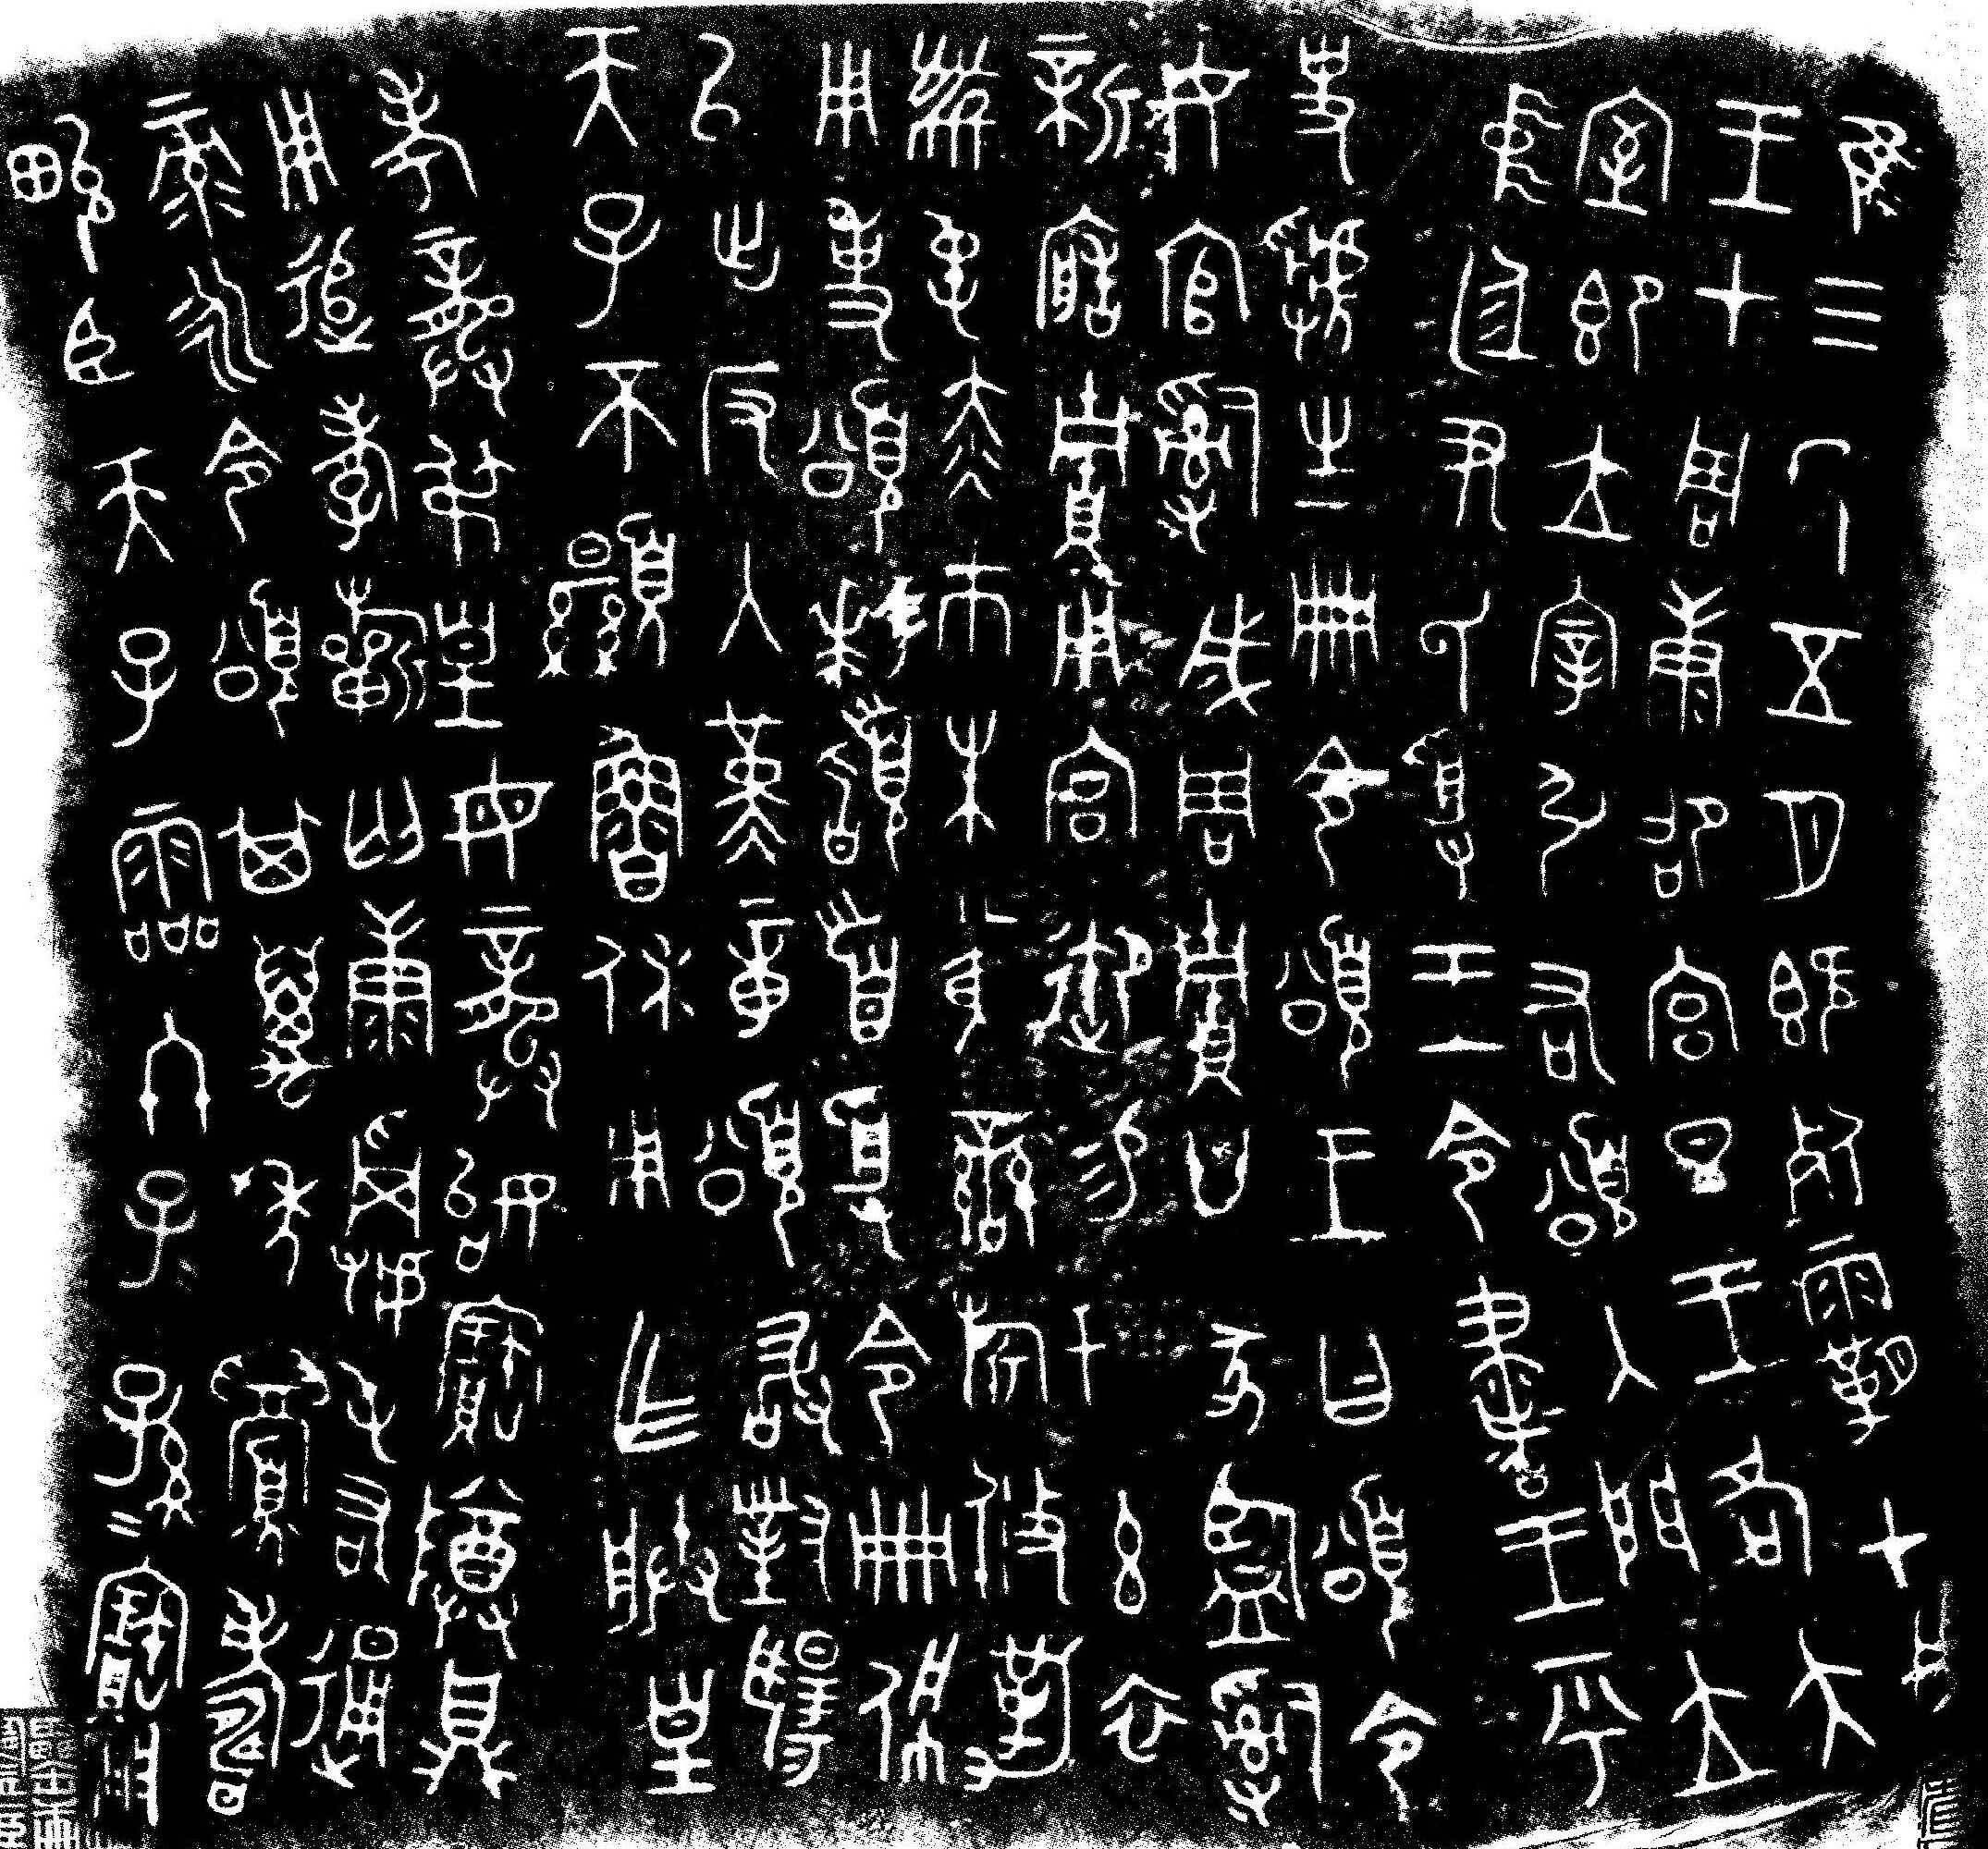 Shen ancient Chinese script in bronze 2000 BC